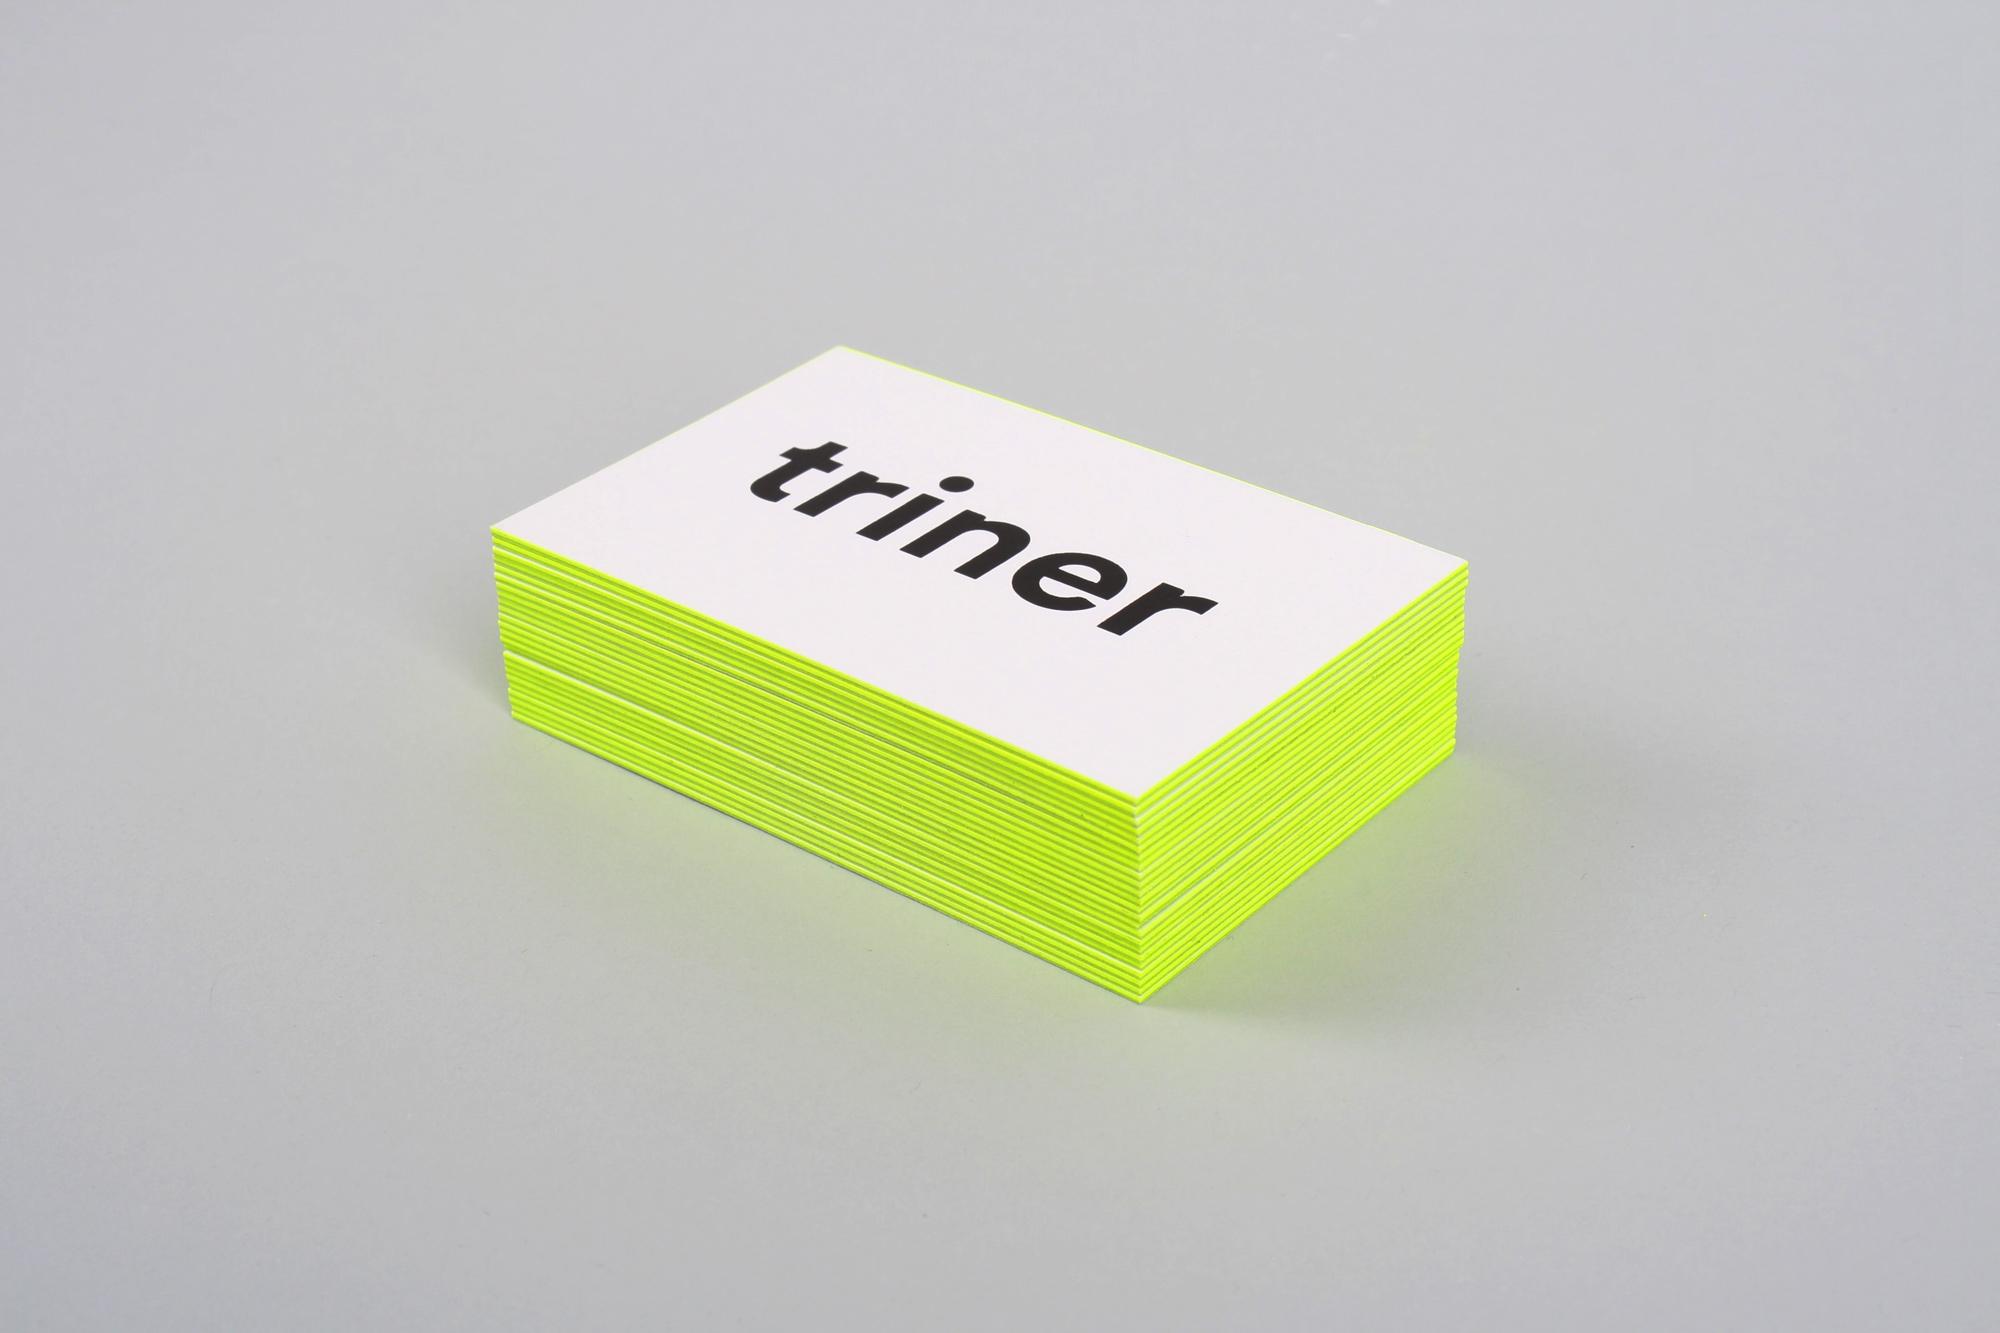 Filip trinertriner business cards filip triner the business cards made big impact and have been featured on several design blogs colourmoves